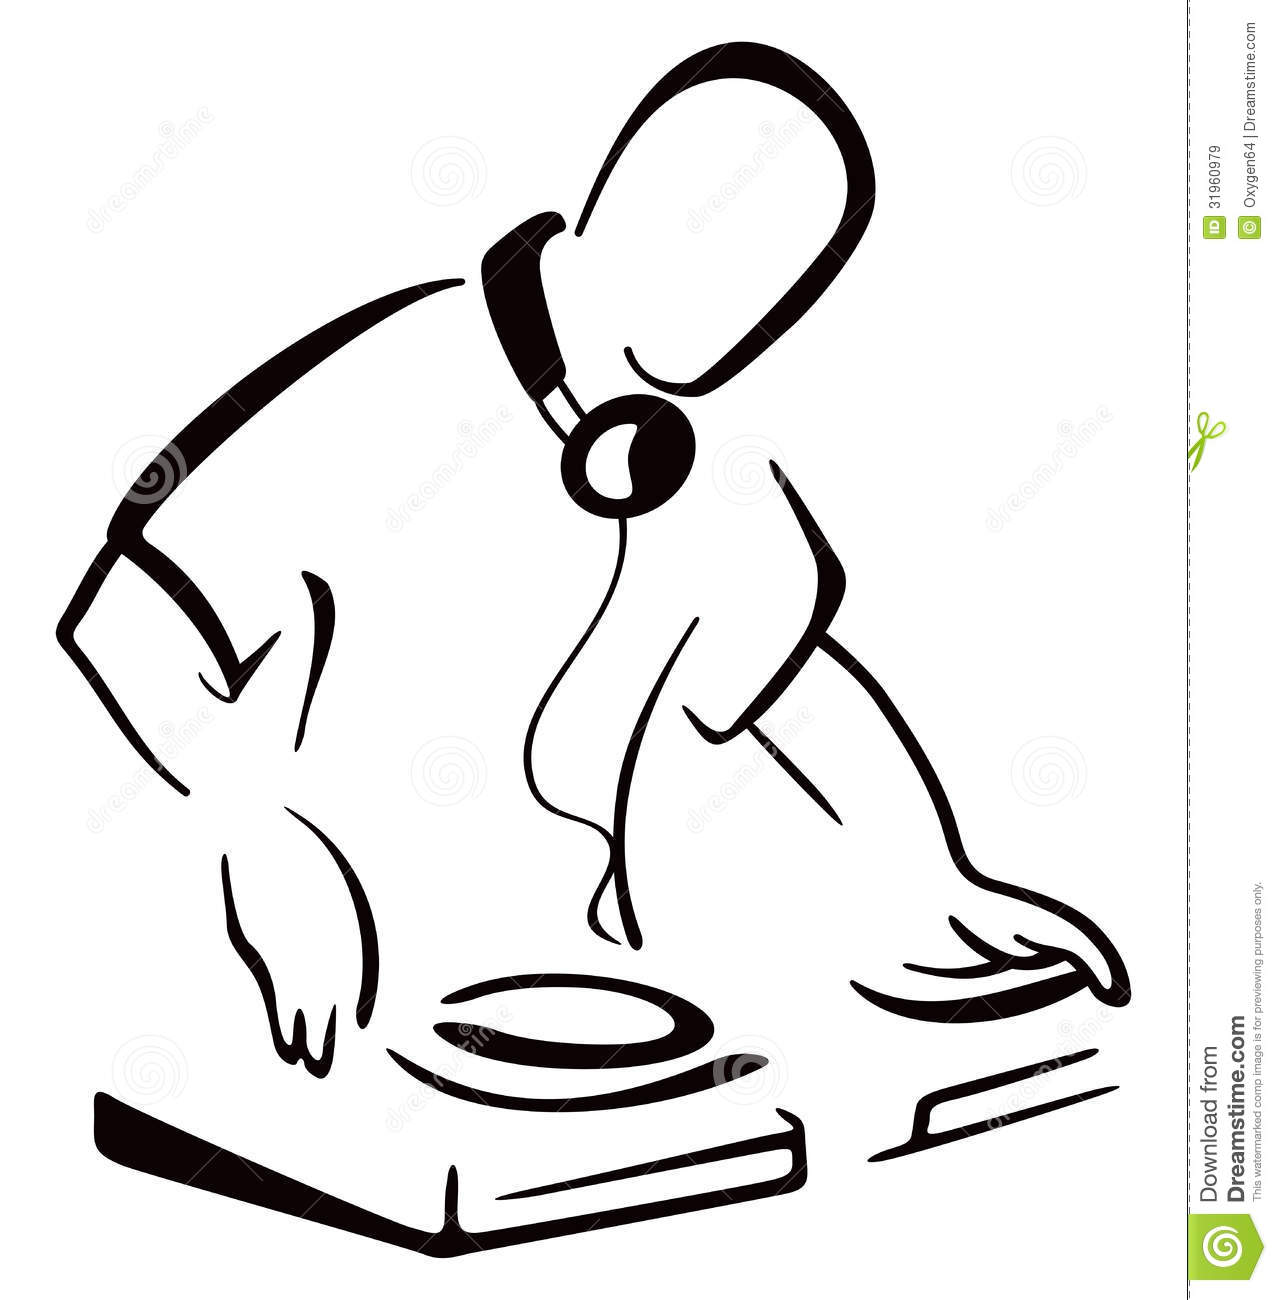 dj behind console royalty free stock images image 31960979 headphones clip art free headphone clipart